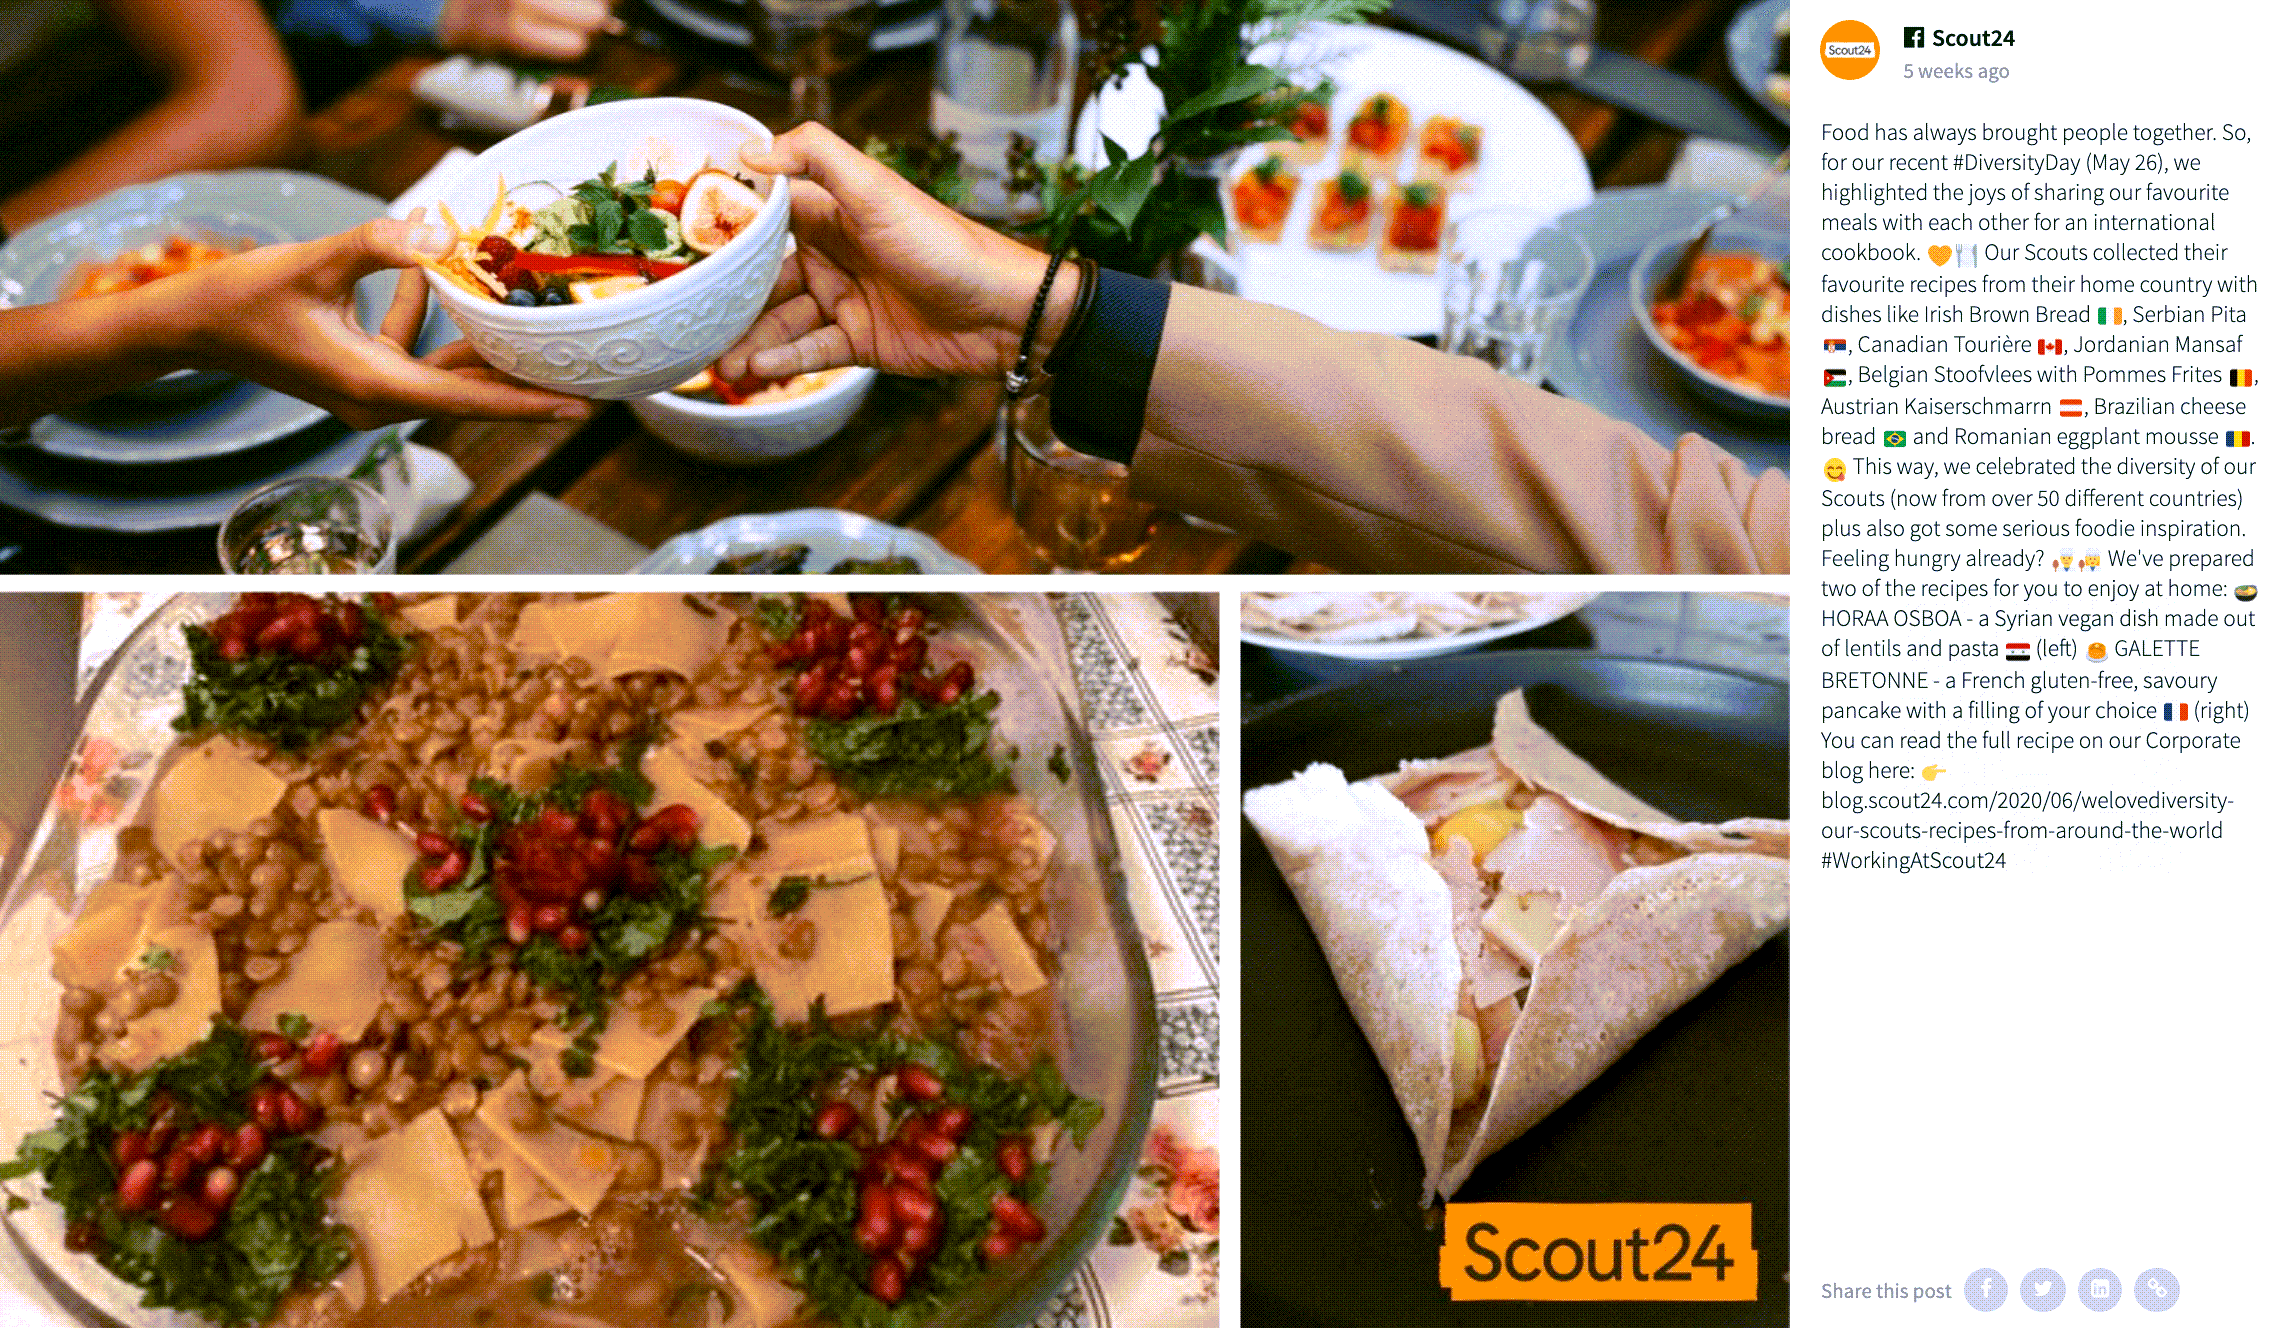 Facebook post by Scout24. The image is a collage of three images. The two bottom images show food dishes while the top image shows two hands reaching across a table laden with food to pass on a bowl with food in it.  The caption reads: Food has always brought people together. So, for our recent #DiversityDay (May 26), we highlighted the joys of sharing our favourite meals with each other for an international cookbook. 🧡🍽 Our Scouts collected their favourite recipes from their home country with dishes like Irish Brown Bread 🇮🇪, Serbian Pita 🇷🇸, Canadian Tourière 🇨🇦, Jordanian Mansaf 🇯🇴, Belgian Stoofvlees with Pommes Frites 🇧🇪, Austrian Kaiserschmarrn 🇦🇹, Brazilian cheese bread 🇧🇷 and Romanian eggplant mousse 🇷🇴. 😋 This way, we celebrated the diversity of our Scouts (now from over 50 different countries) plus also got some serious foodie inspiration. Feeling hungry already? 👨‍🍳👩‍🍳 We've prepared two of the recipes for you to enjoy at home: 🍲 HORAA OSBOA - a Syrian vegan dish made out of lentils and pasta 🇸🇾 (left) 🥞 GALETTE BRETONNE - a French gluten-free, savoury pancake with a filling of your choice 🇫🇷 (right) You can read the full recipe on our Corporate blog here: 👉 blog.scout24.com/2020/06/welovediversity-our-scouts-recipes-from-around-the-world #WorkingAtScout24